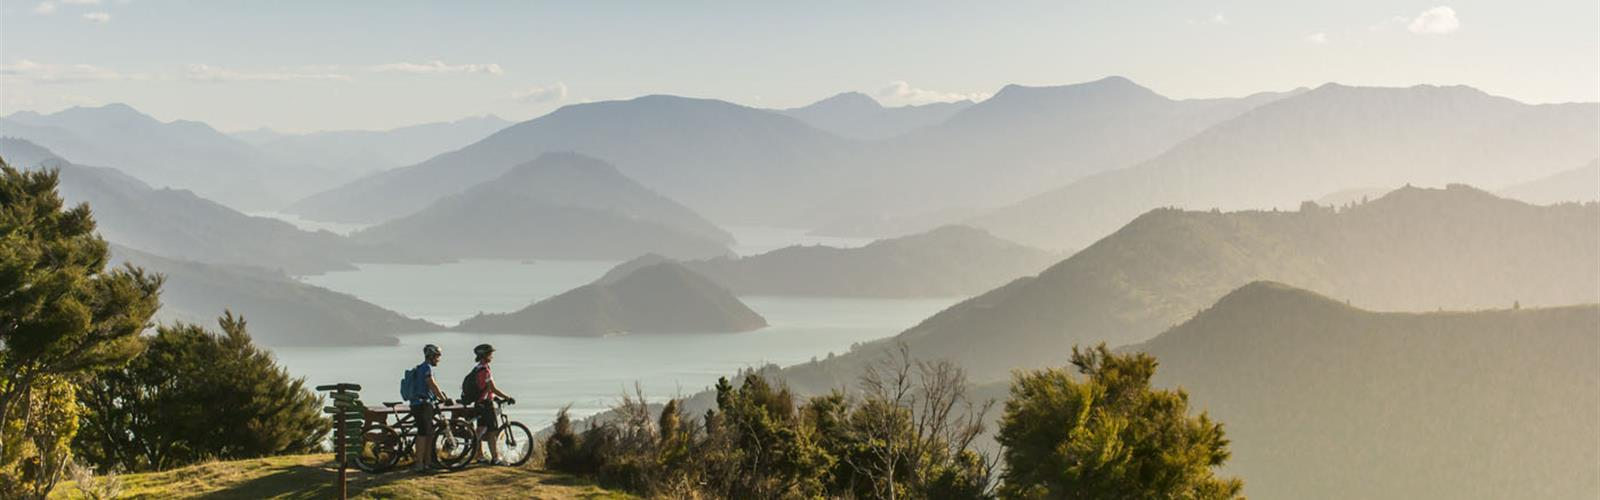 Conventions and Incentives New Zealand | Conference NZ | NZ